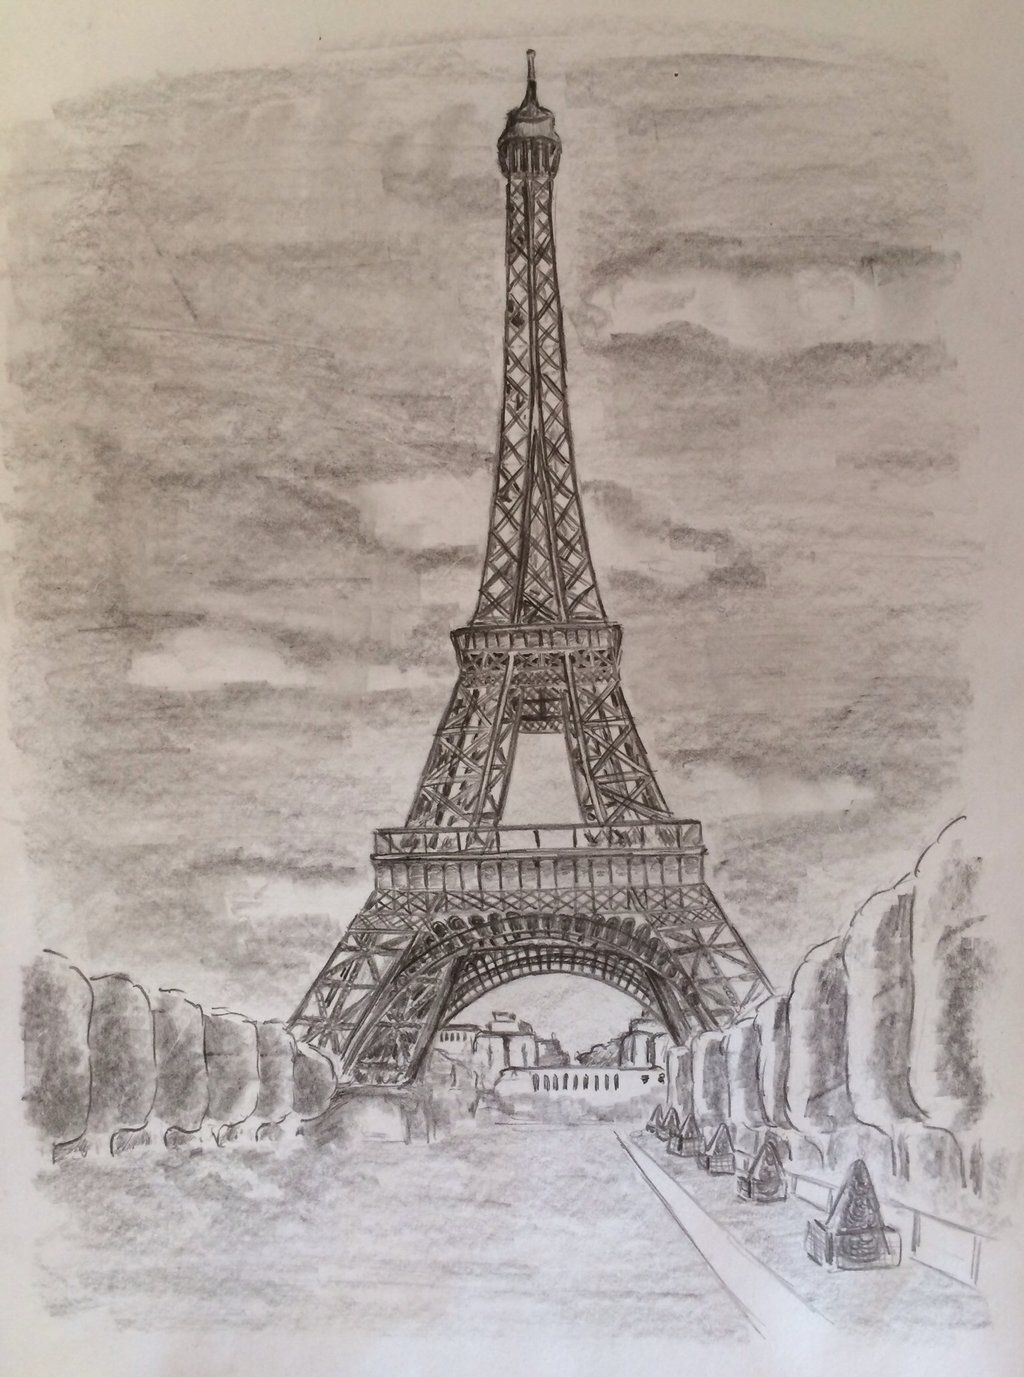 Tour Eiffel tower paris france black white drawing by ...